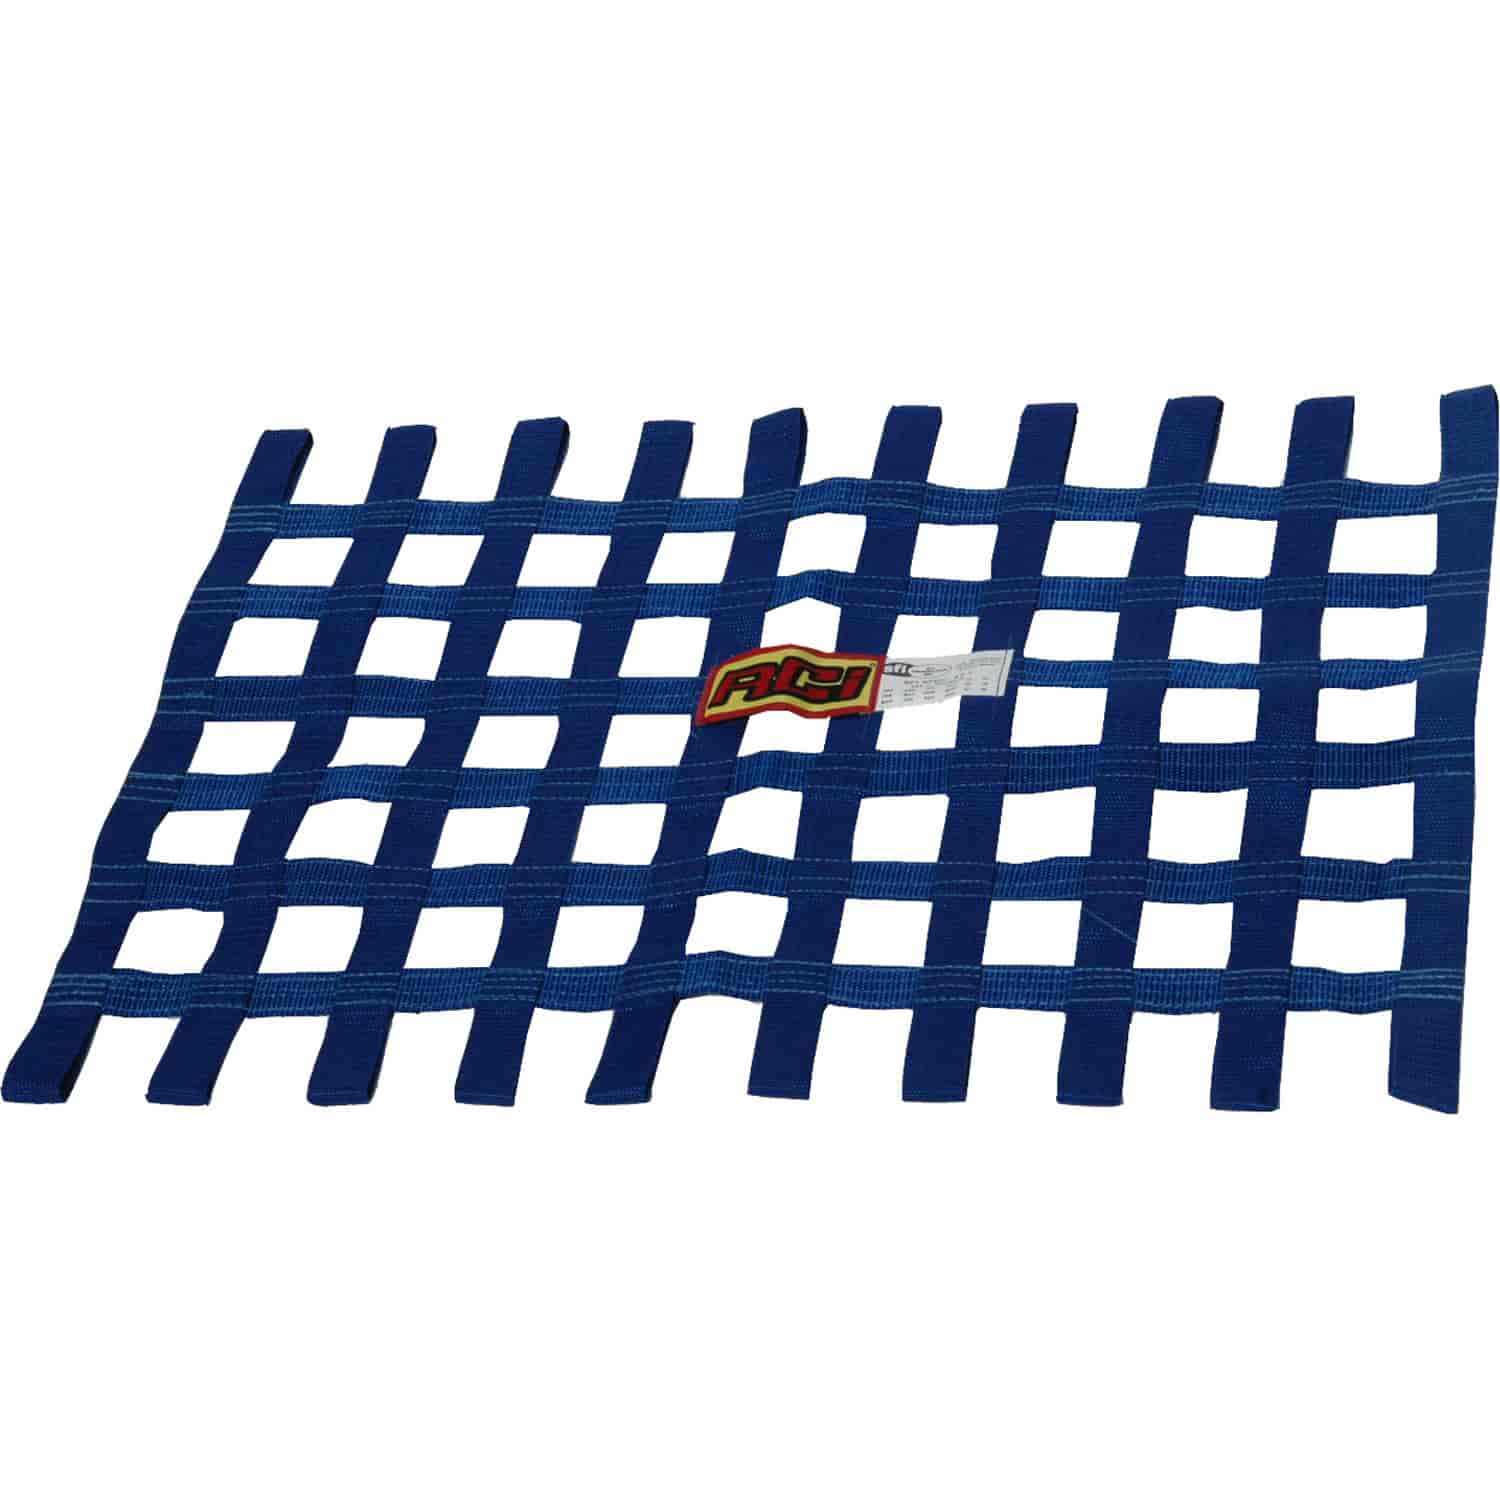 RCI 7601C - RCI Safety Window Net